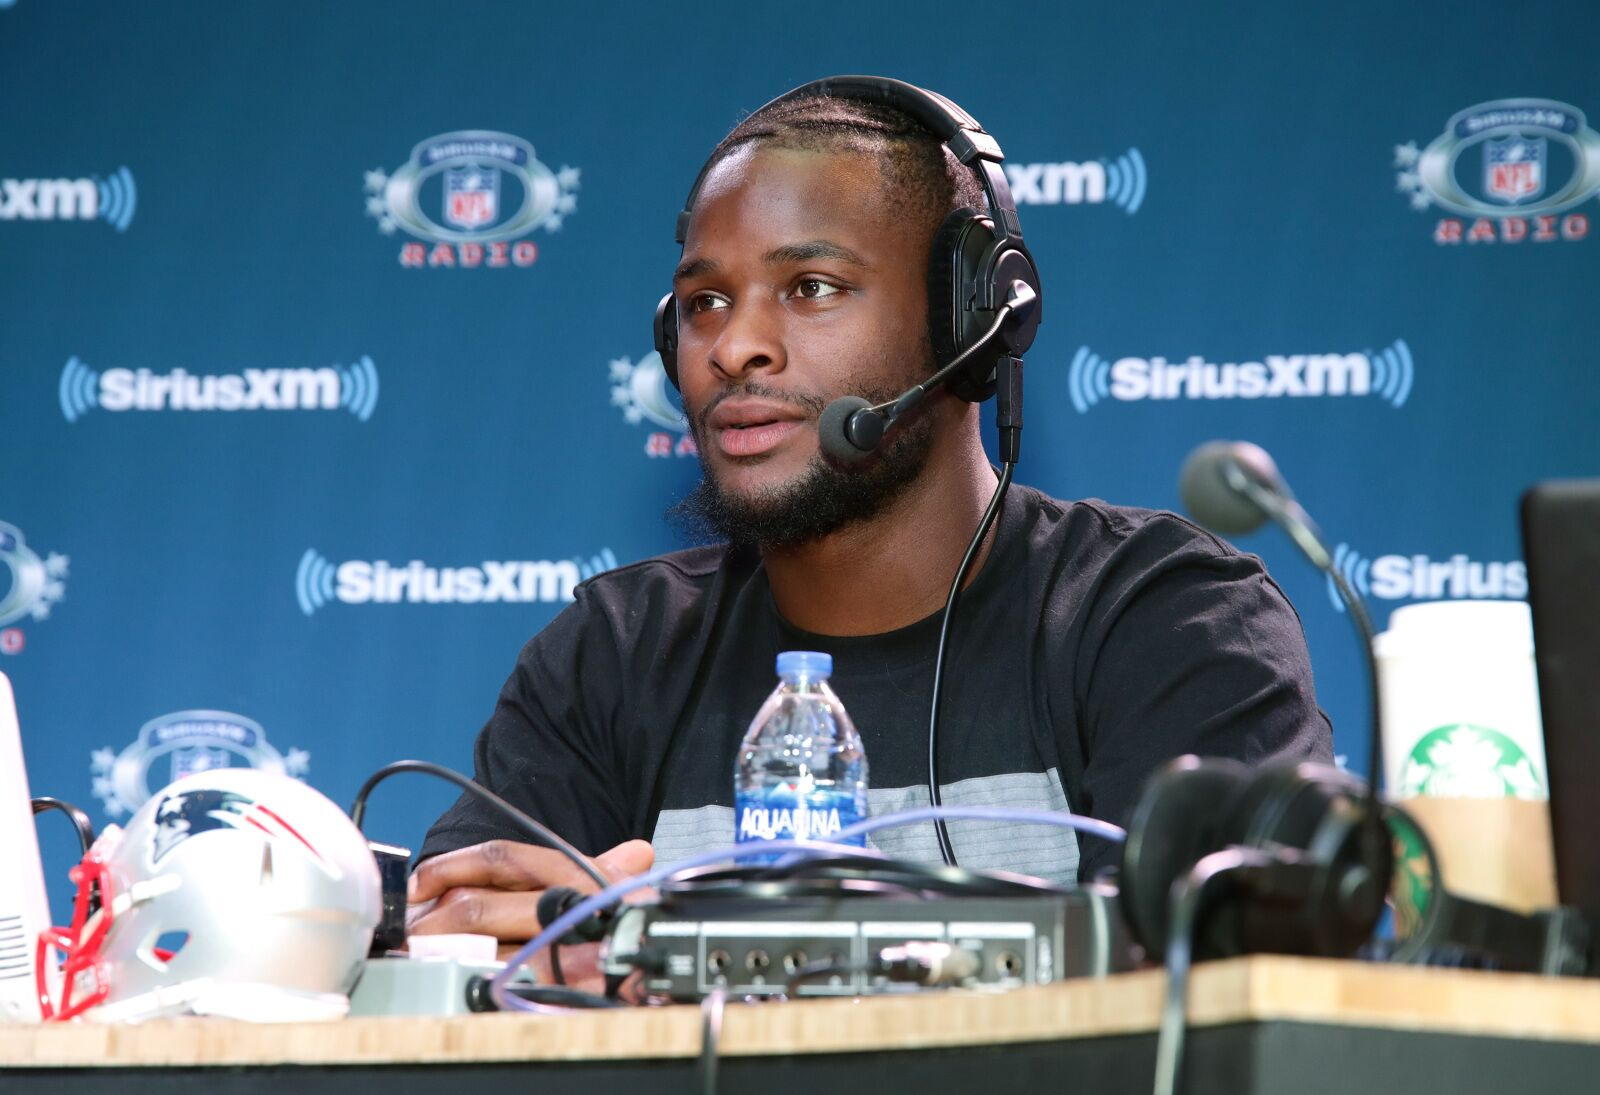 Chicago Bears were never going to sign Le'Veon Bell